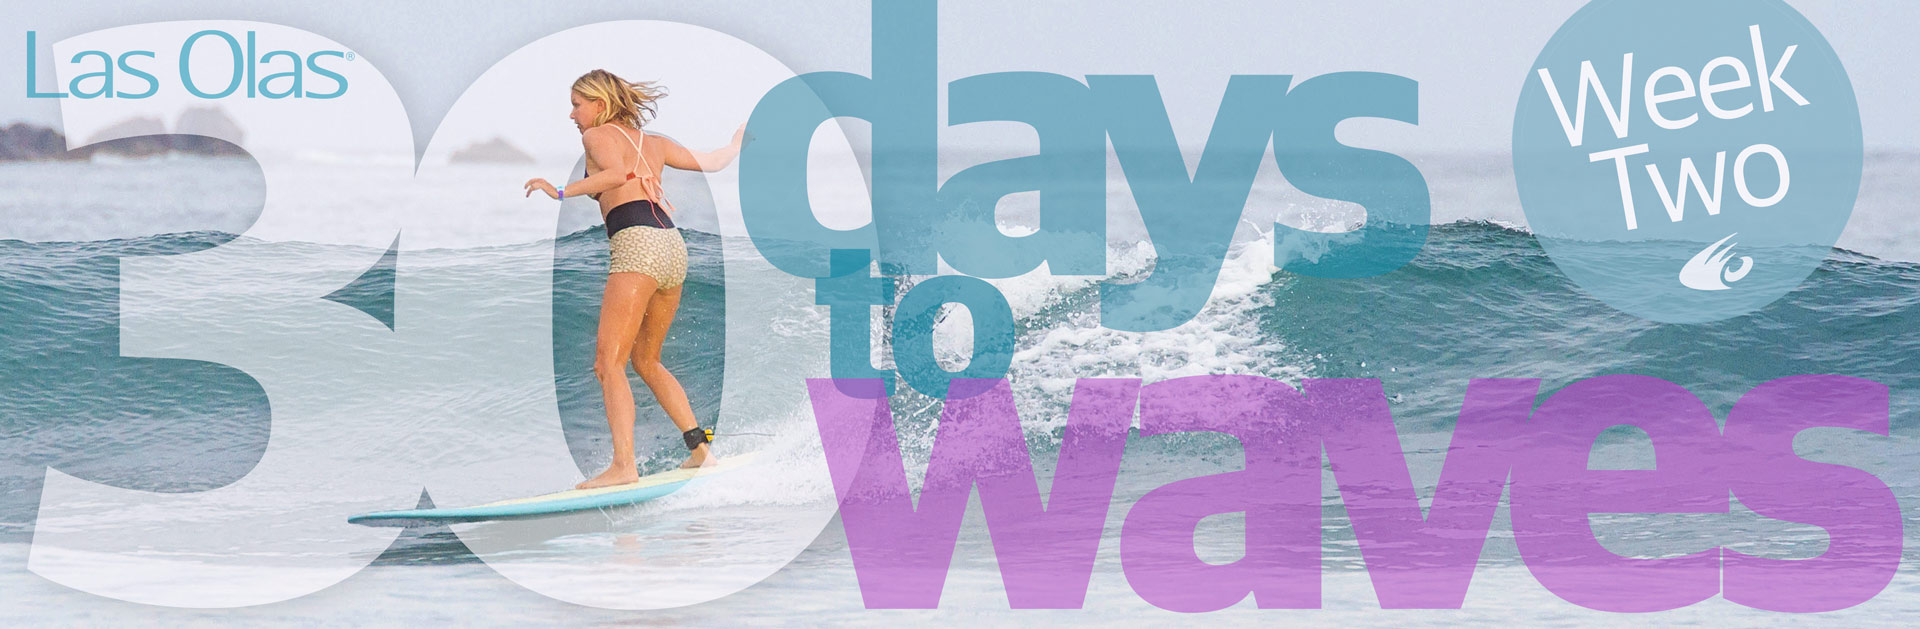 30 Days to Waves Week 2